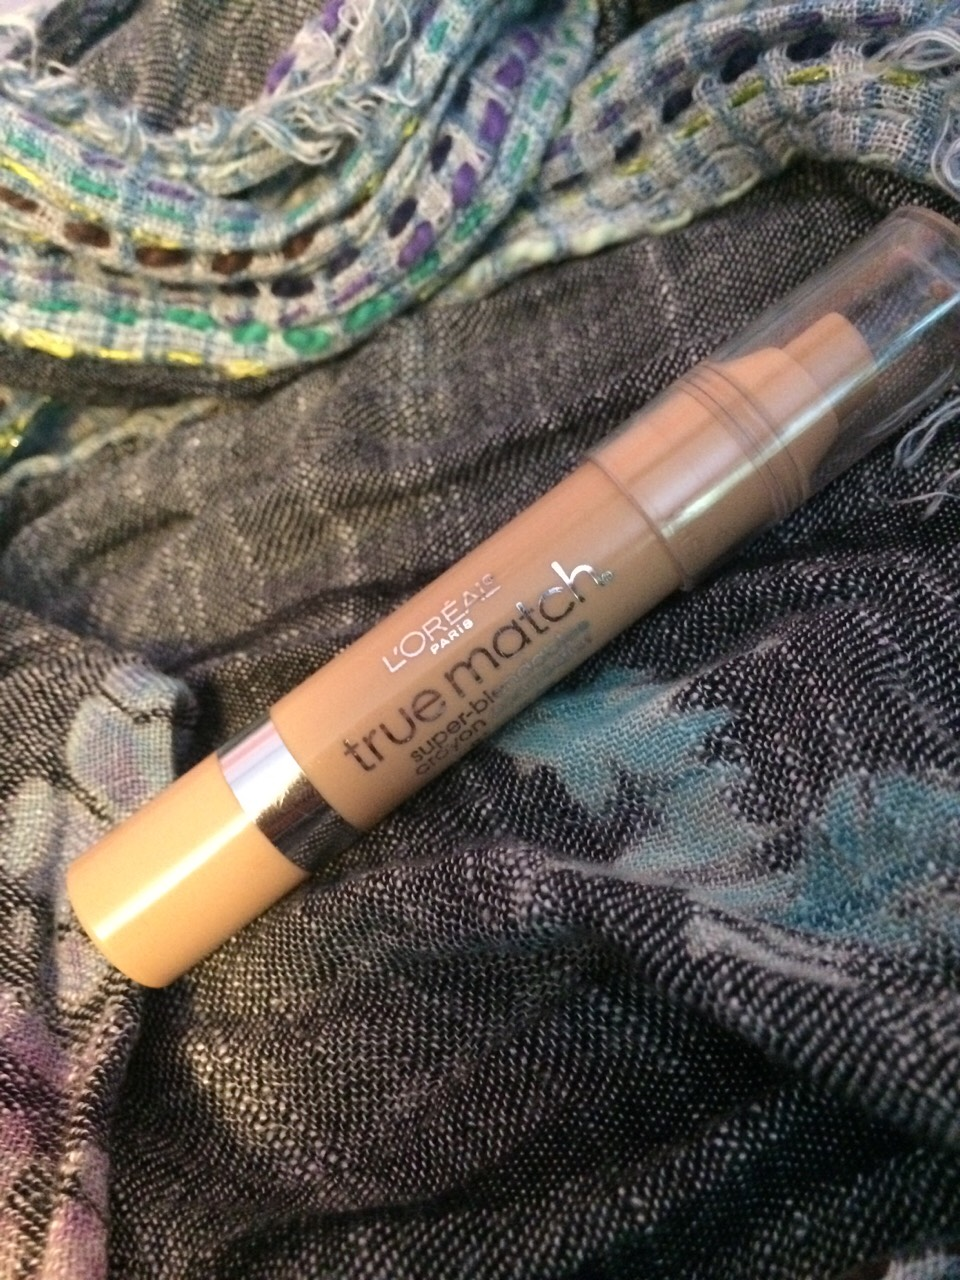 Use True Match (extremely blend able) crayon concealer for foundation after the Aveeno